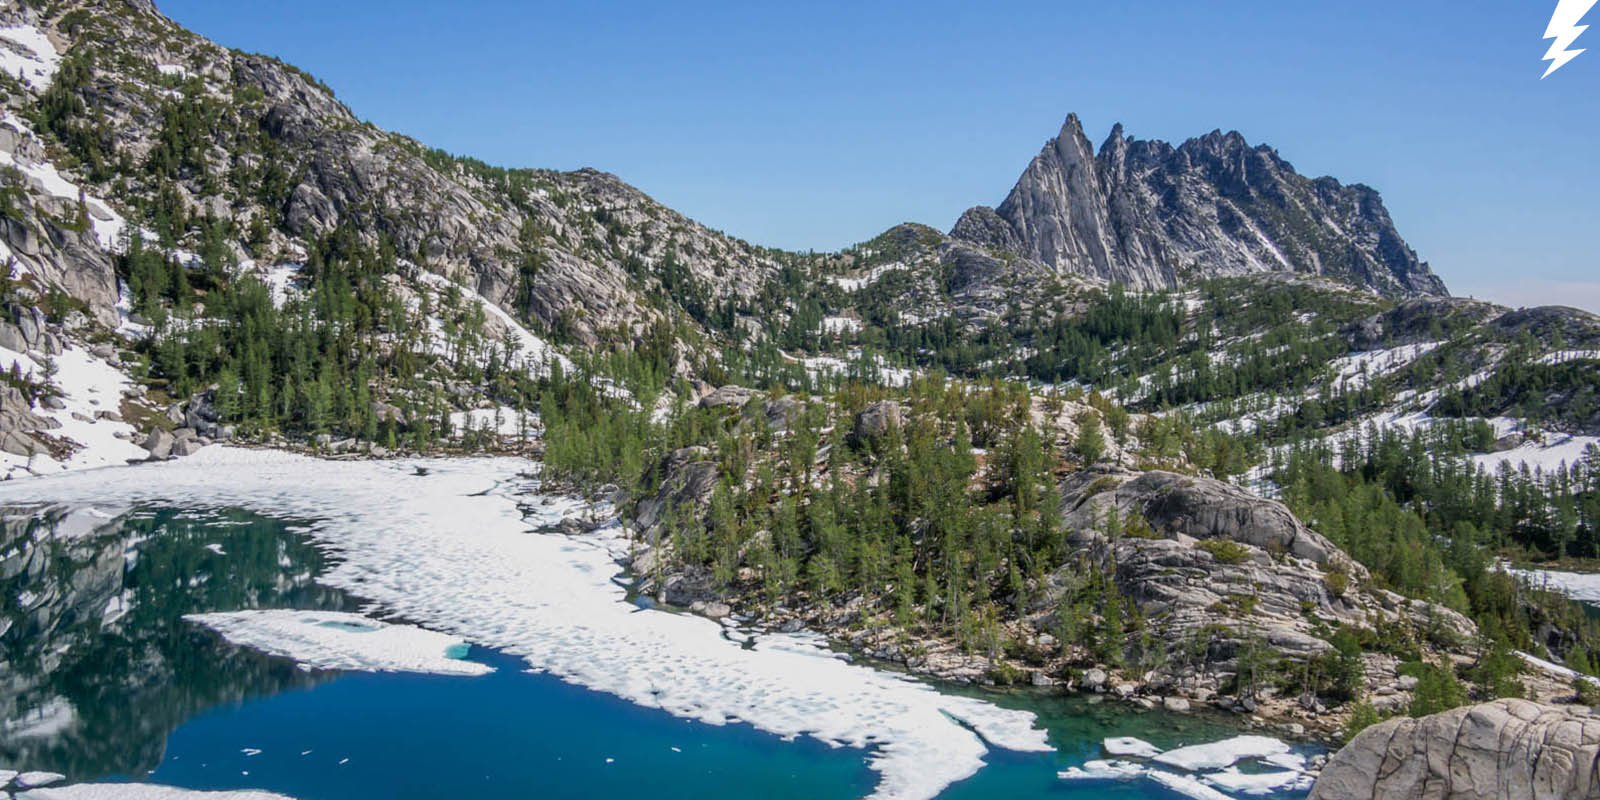 Mountain Magic - A Magical Day on the Enchantments Trail